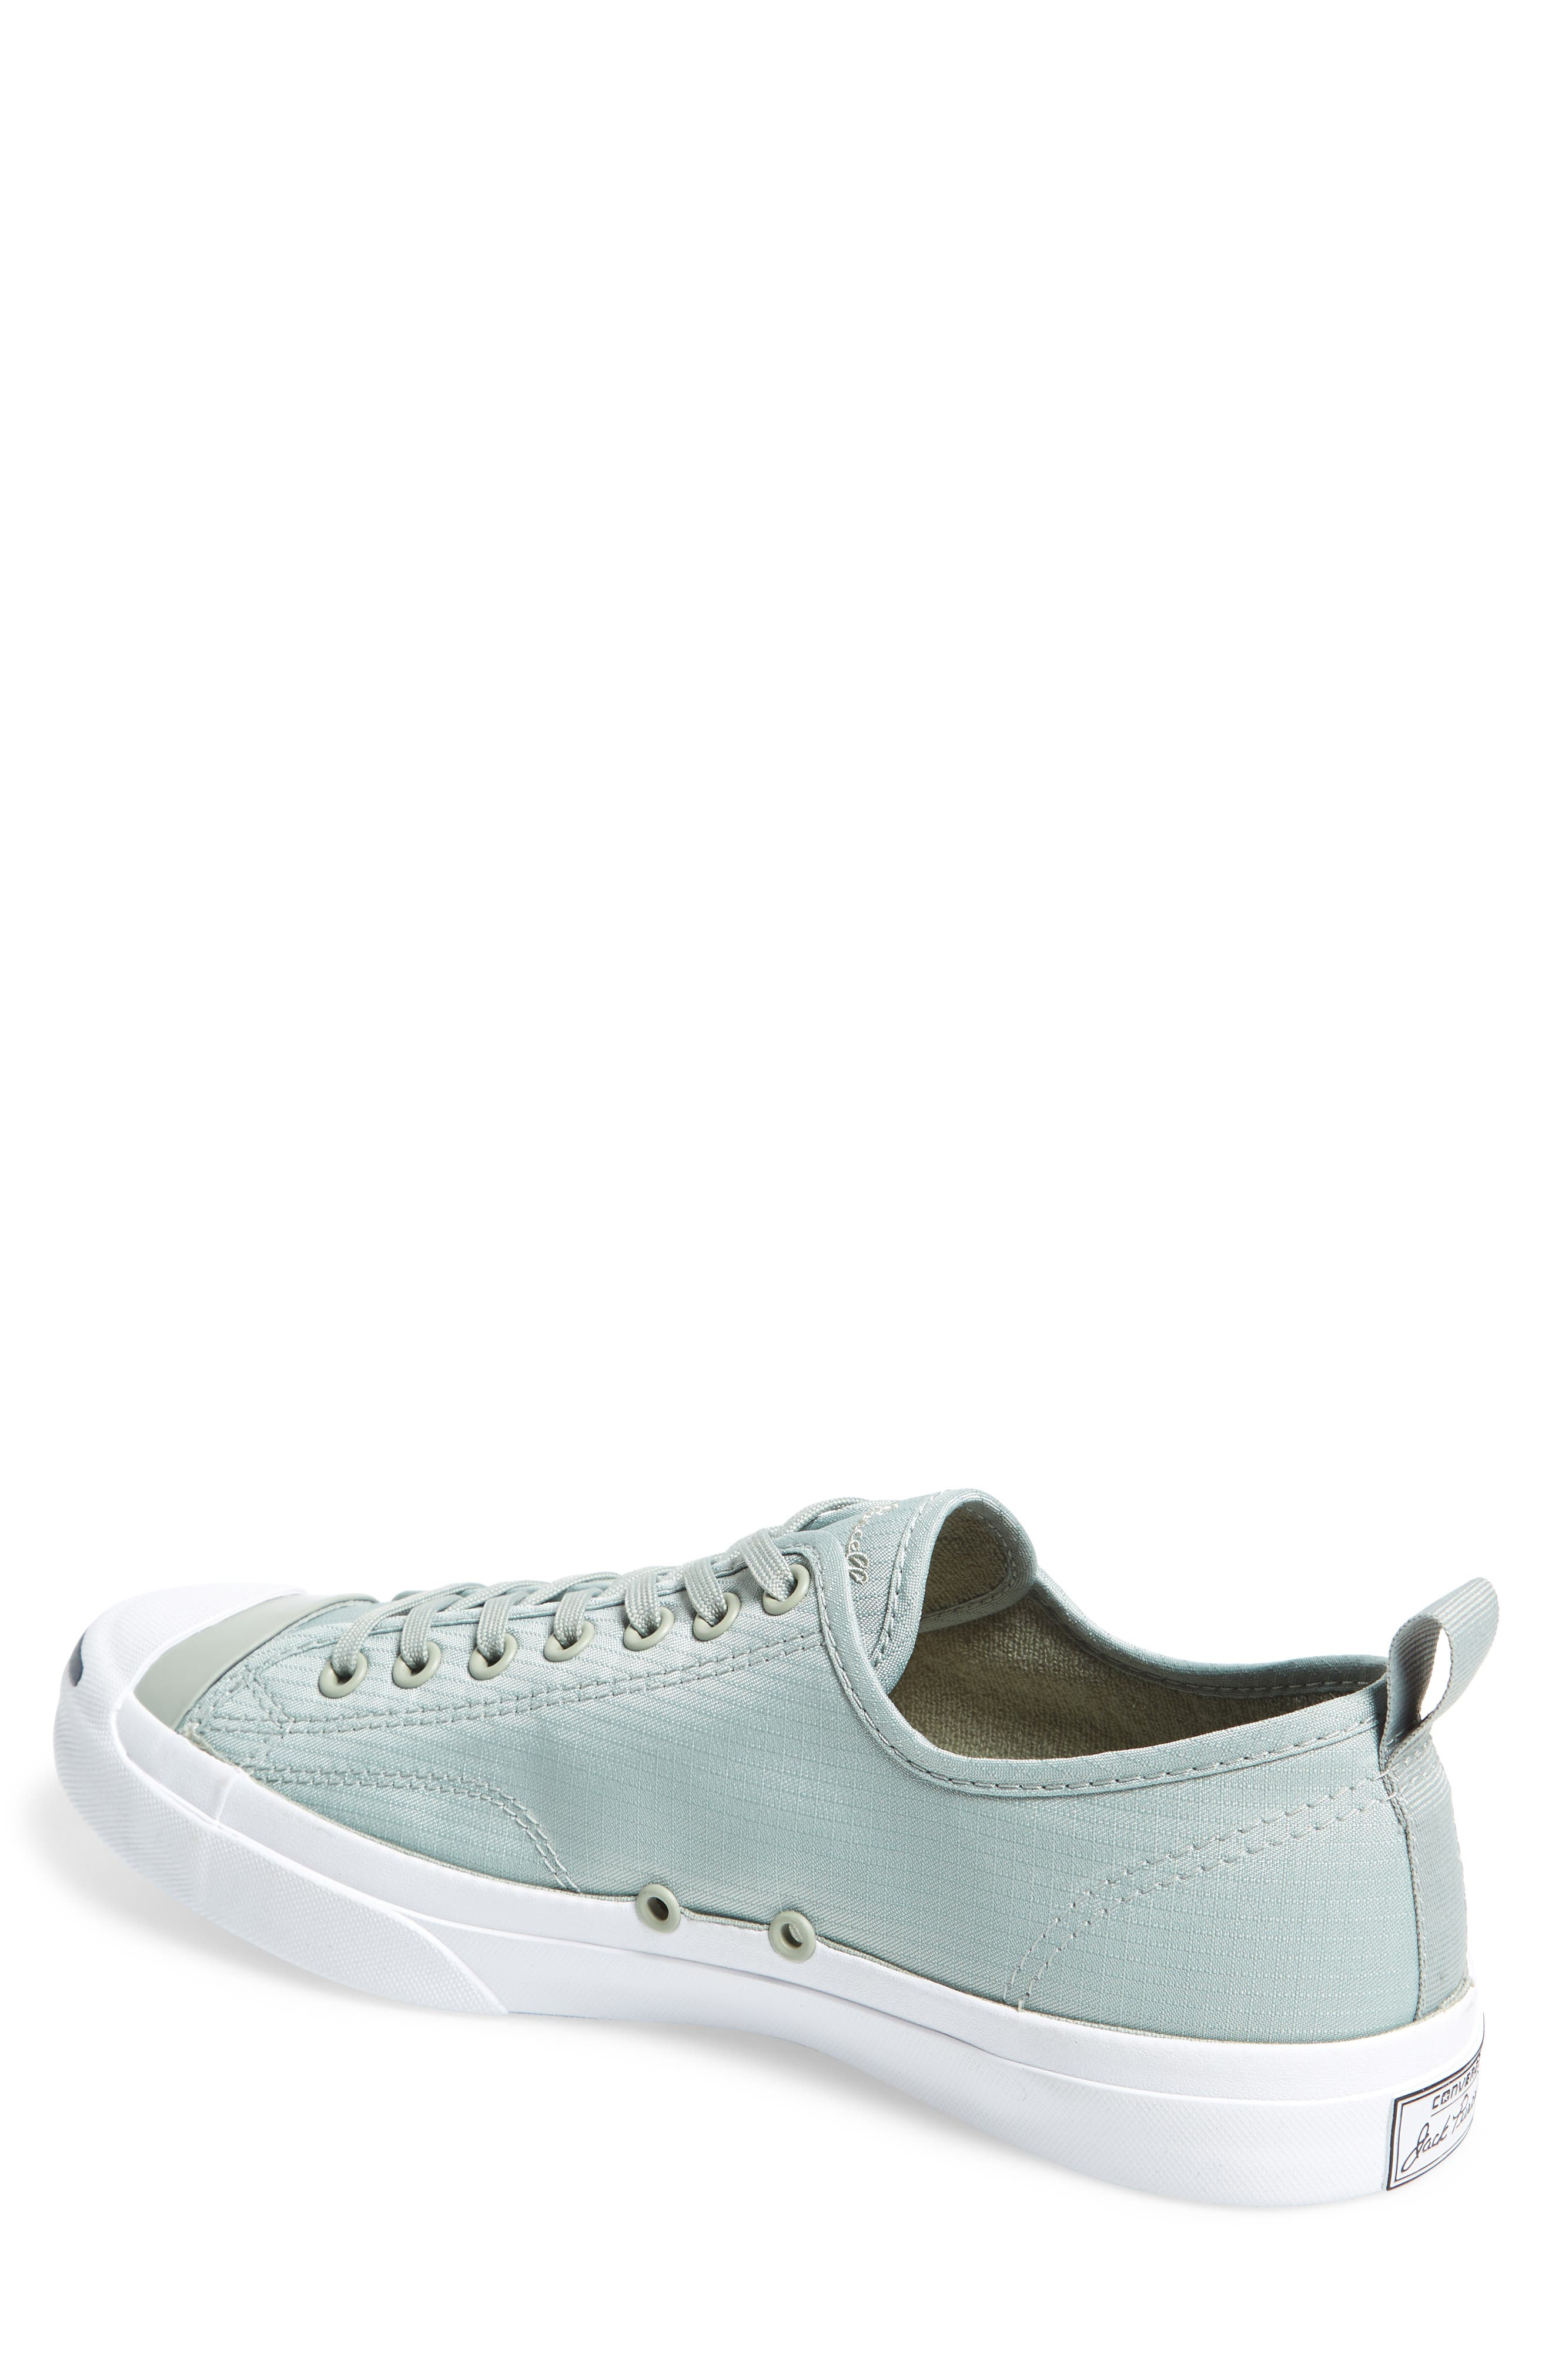 Jack Purcell Ripstop Sneaker,                             Alternate thumbnail 4, color,